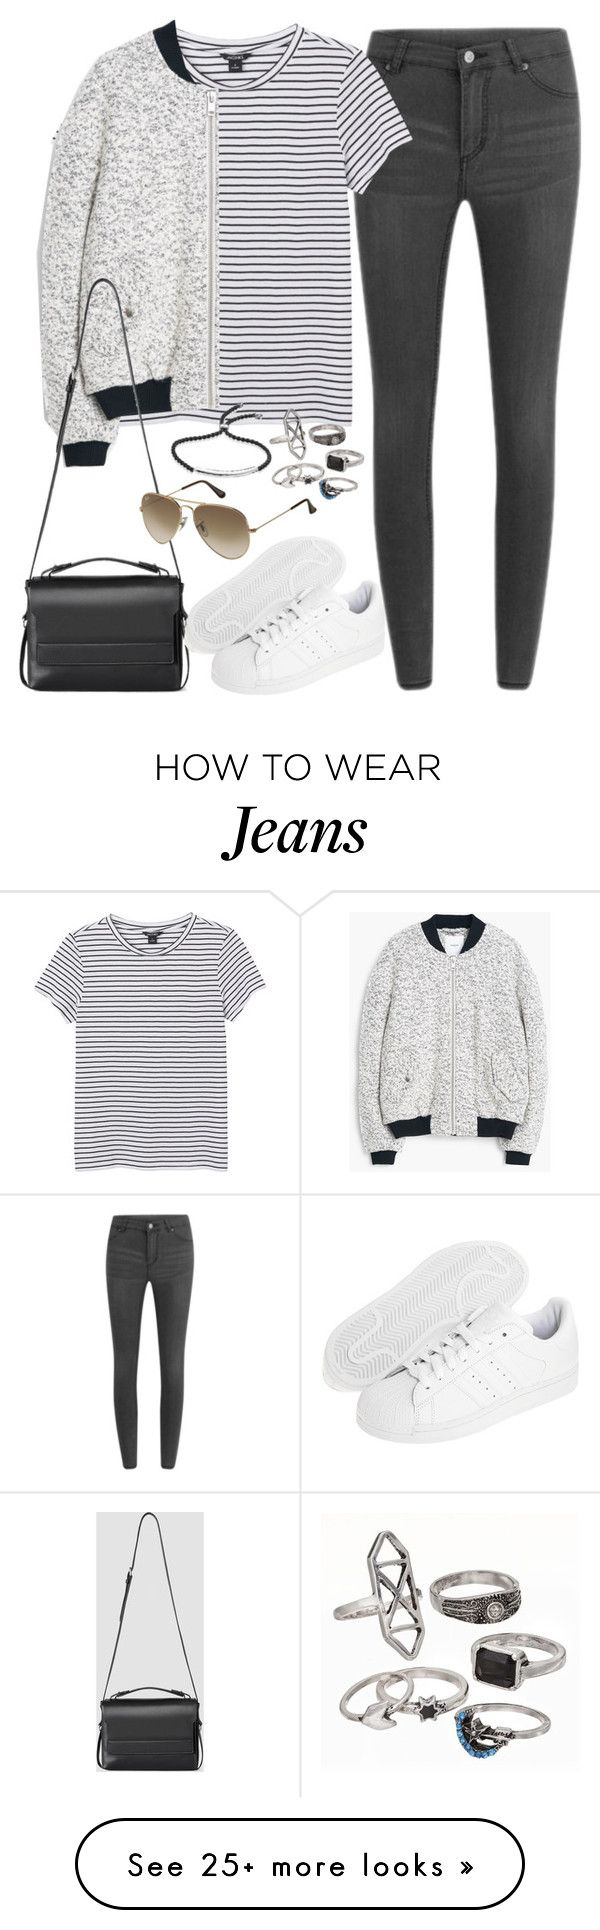 """Untitled#3733"" by fashionnfacts on Polyvore featuring Cheap Monday, Monki, MANGO, AllSaints, adidas Originals, Ray-Ban, Mudd and Monica Vinader"